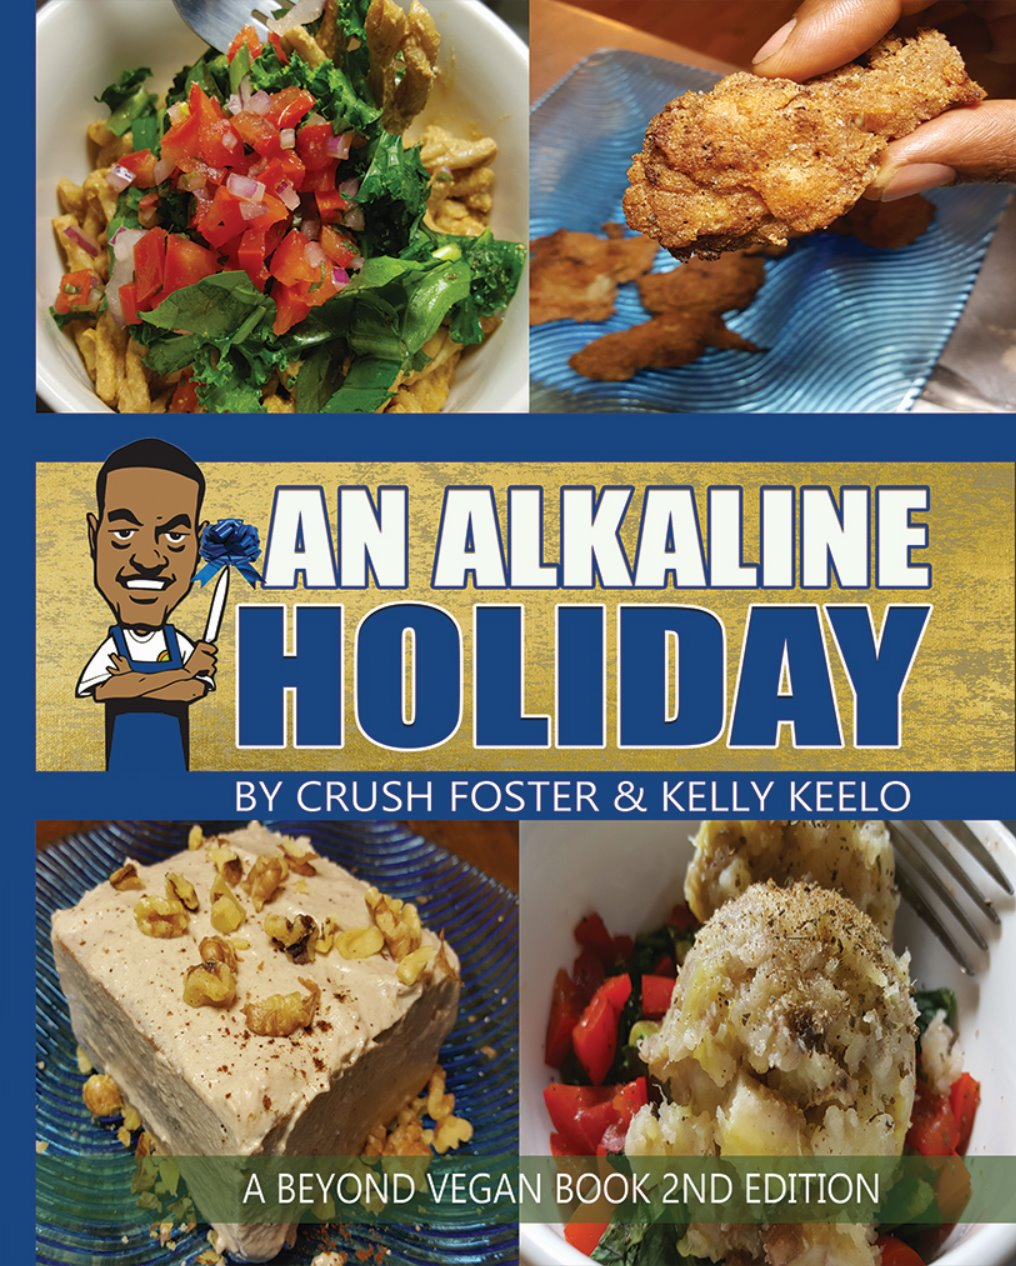 AN ALKALINE HOLIDAY PAPERBACK